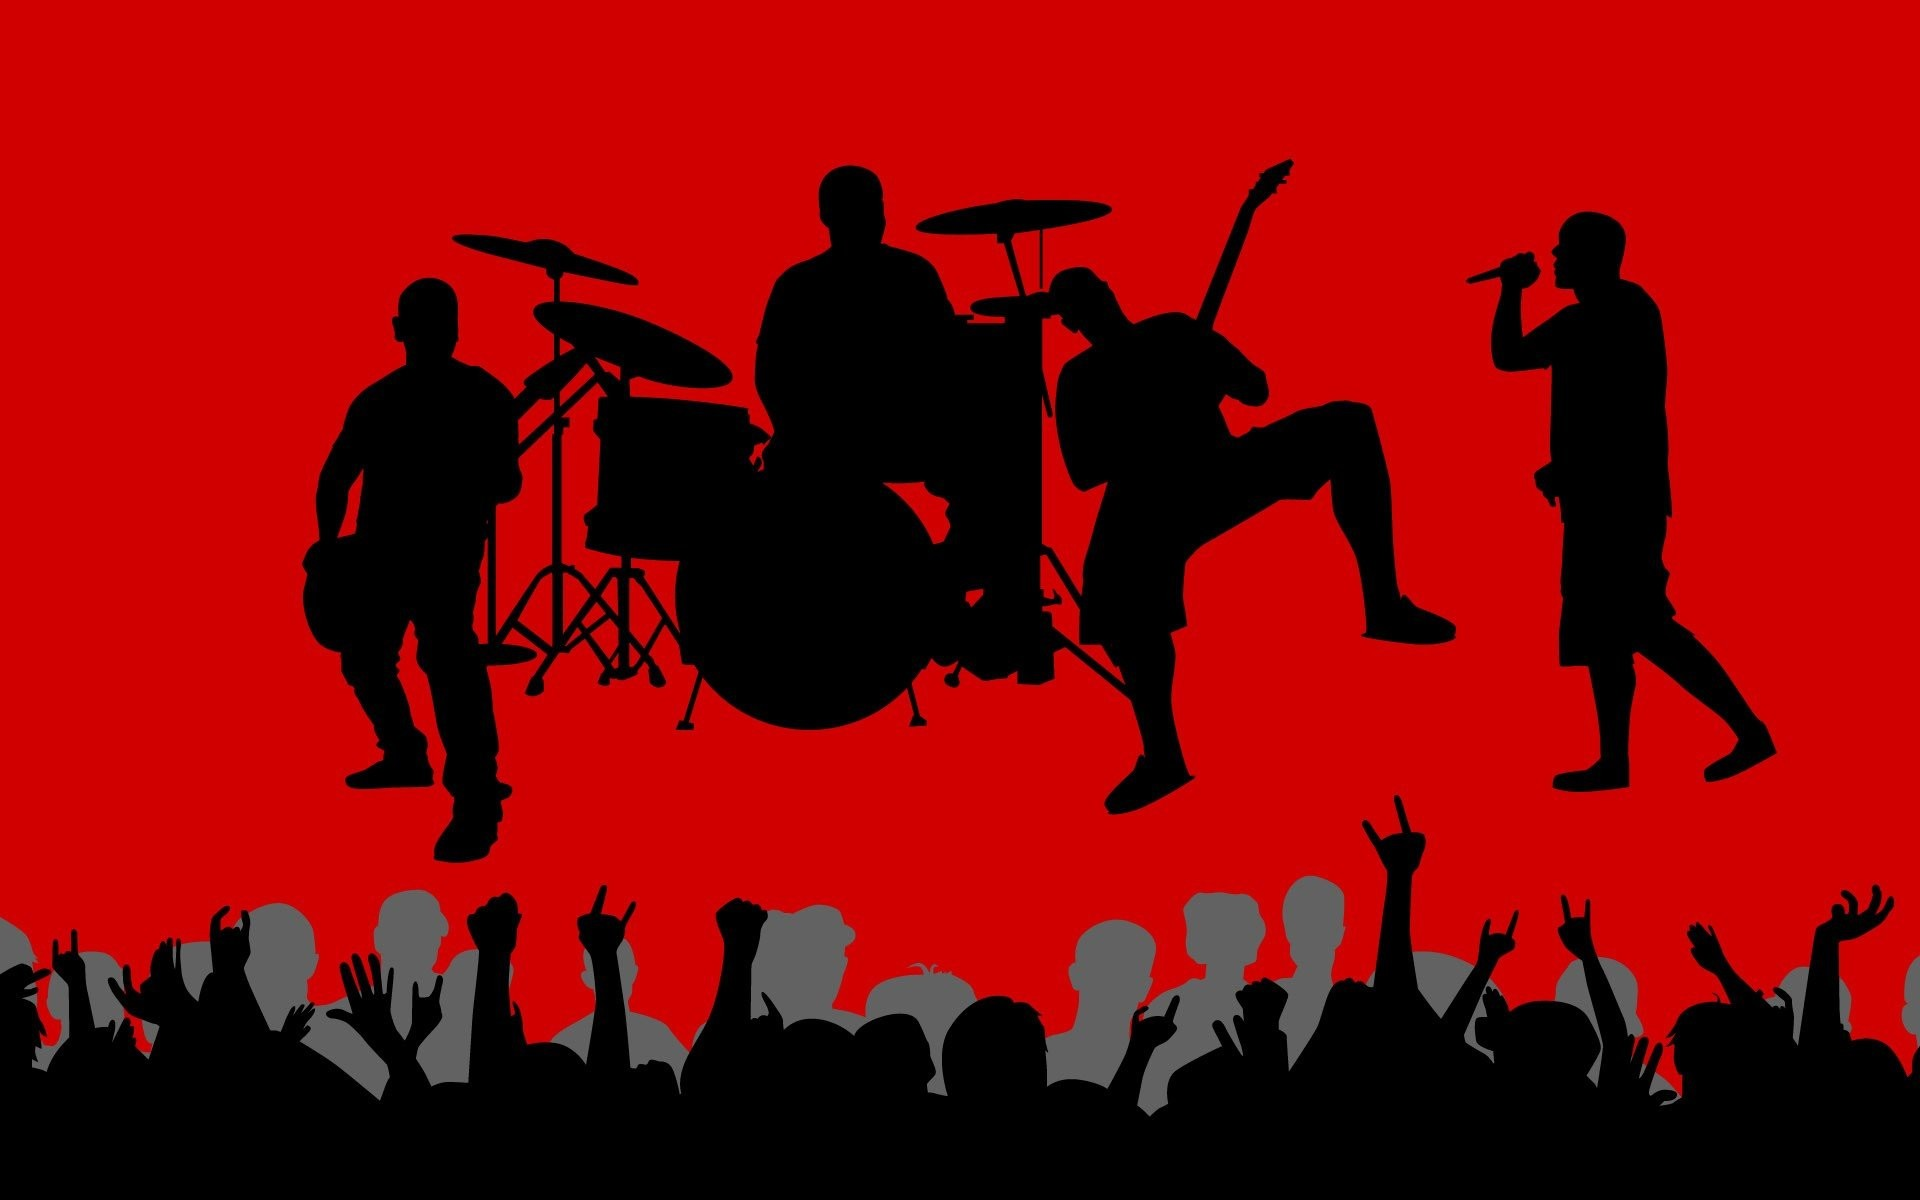 1920x1200 Music vectors shadows crowd band red background wallpaper |  |  252059 | WallpaperUP